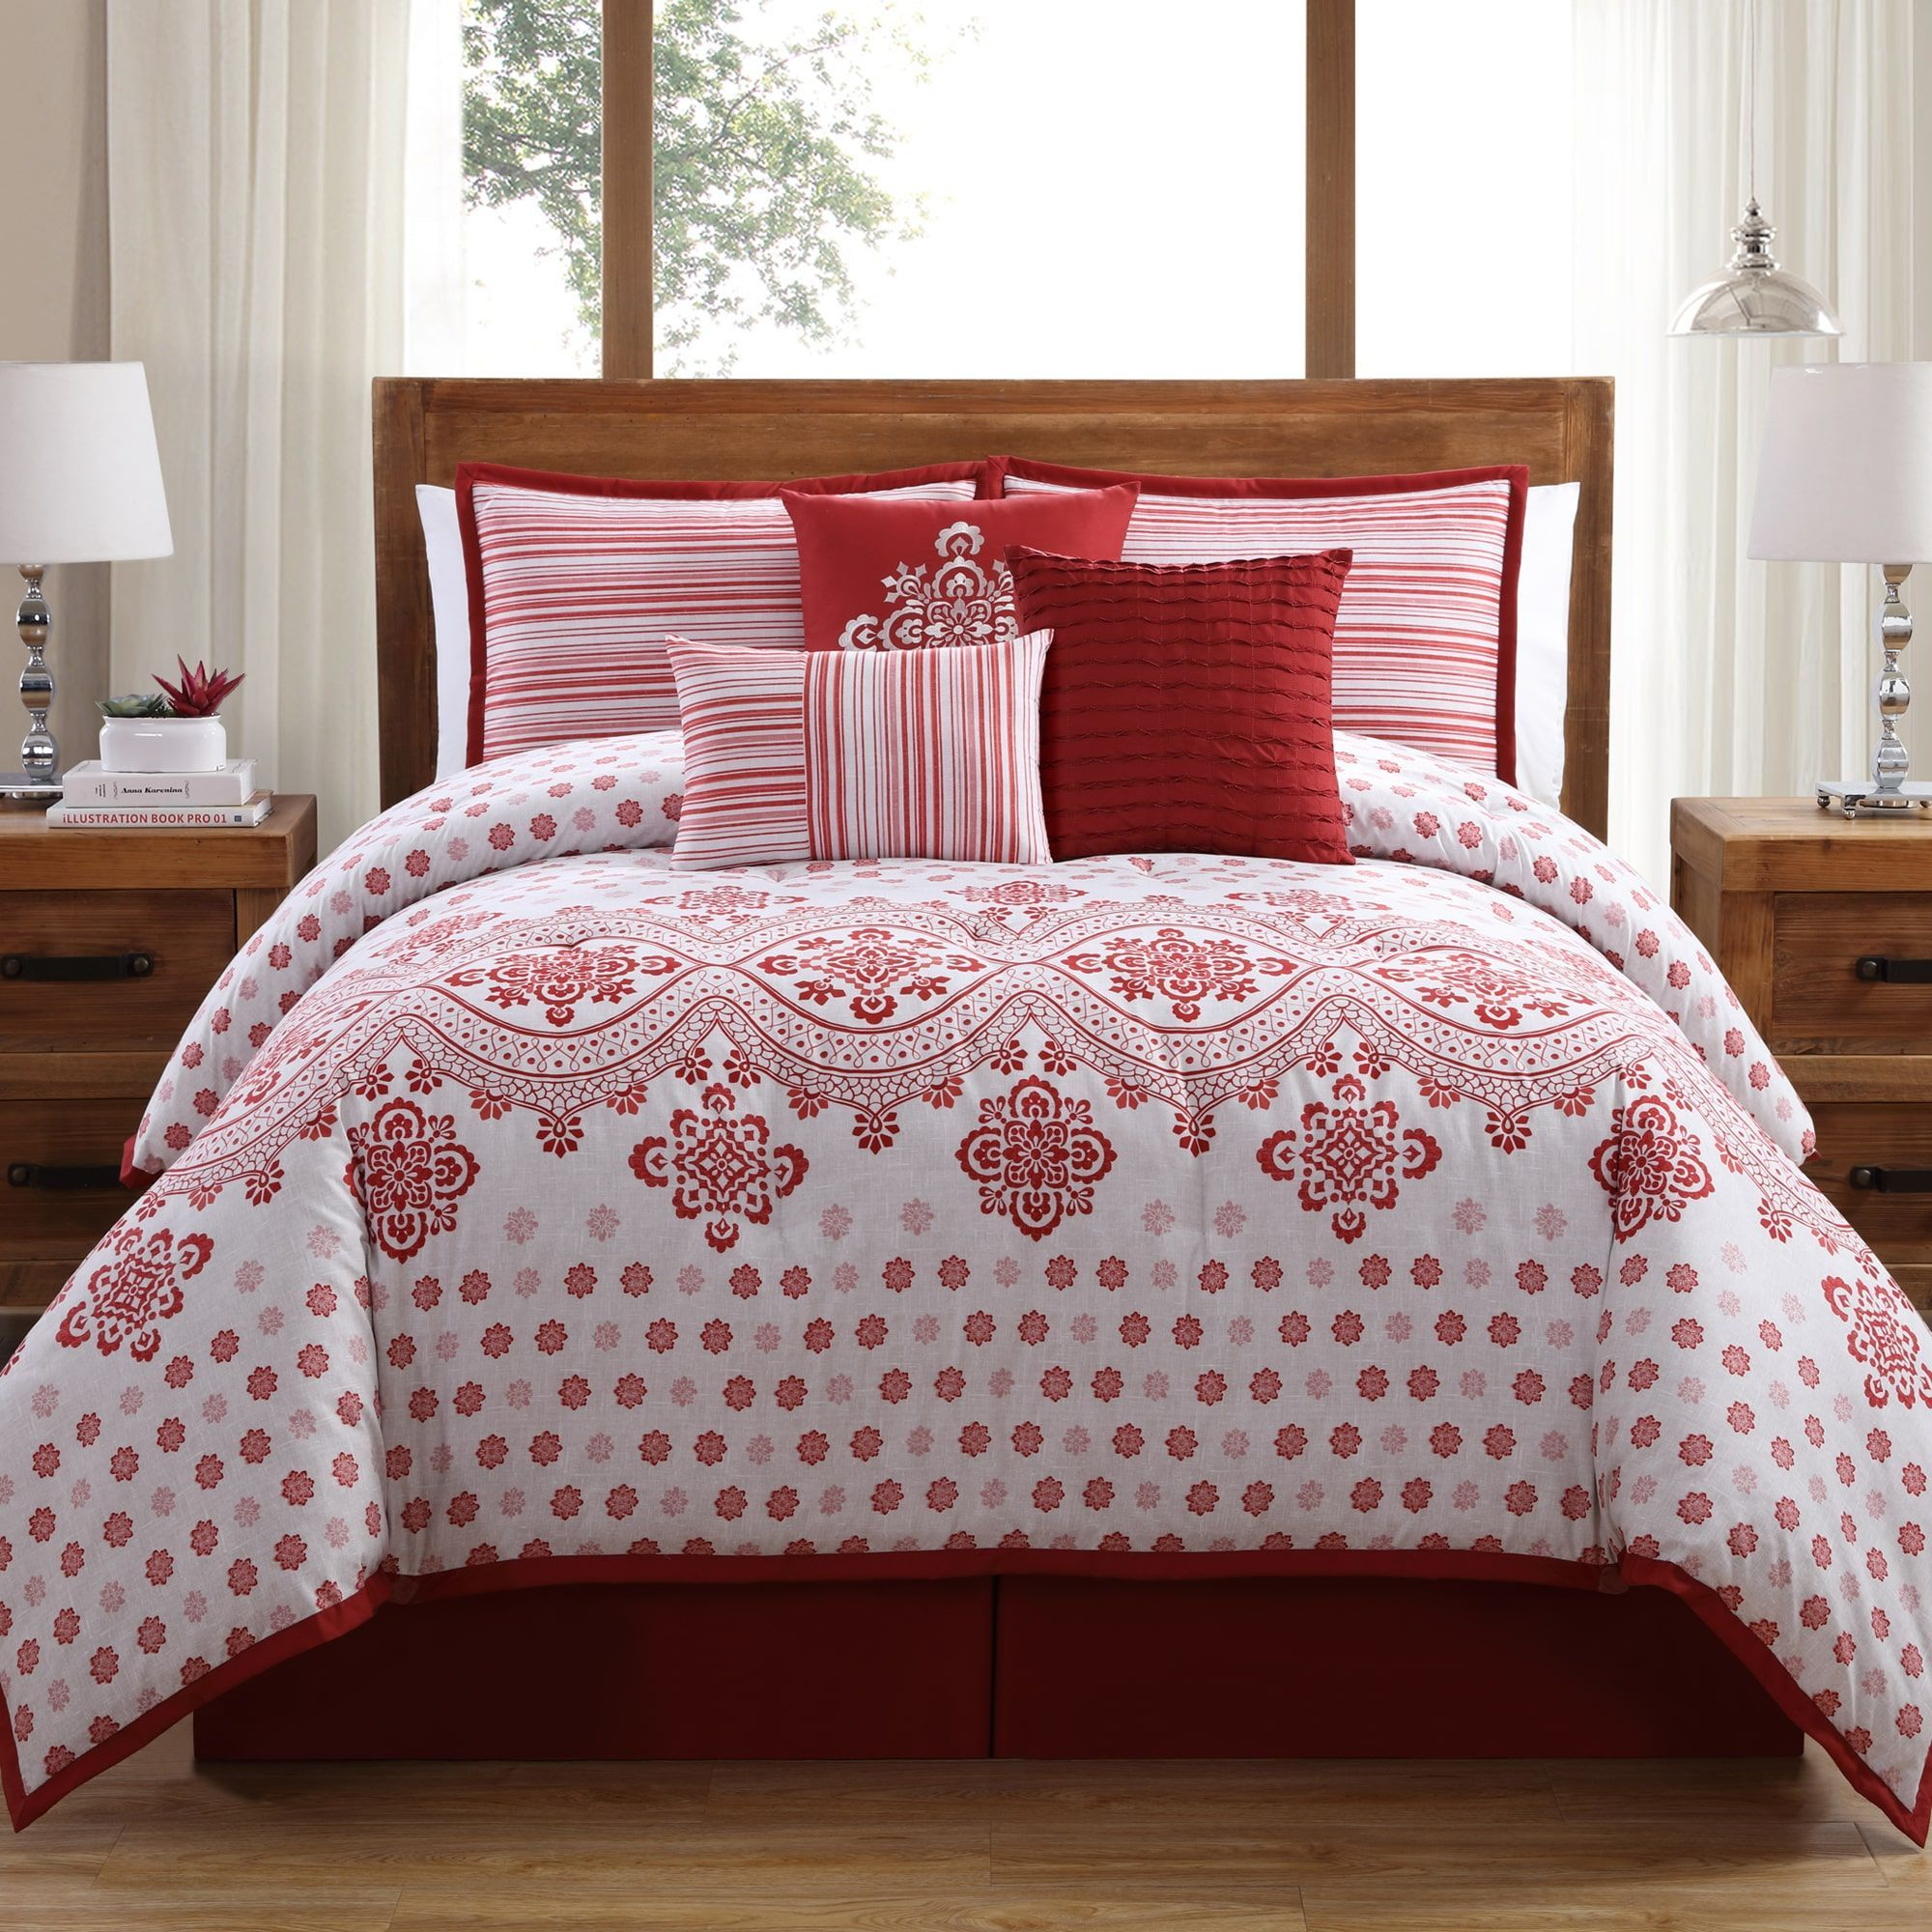 White Birch Alba 7 Piece Comforter Set King Modern Contemporary French Country Red Comforter Sets Red Bedding Queen Comforter Sets